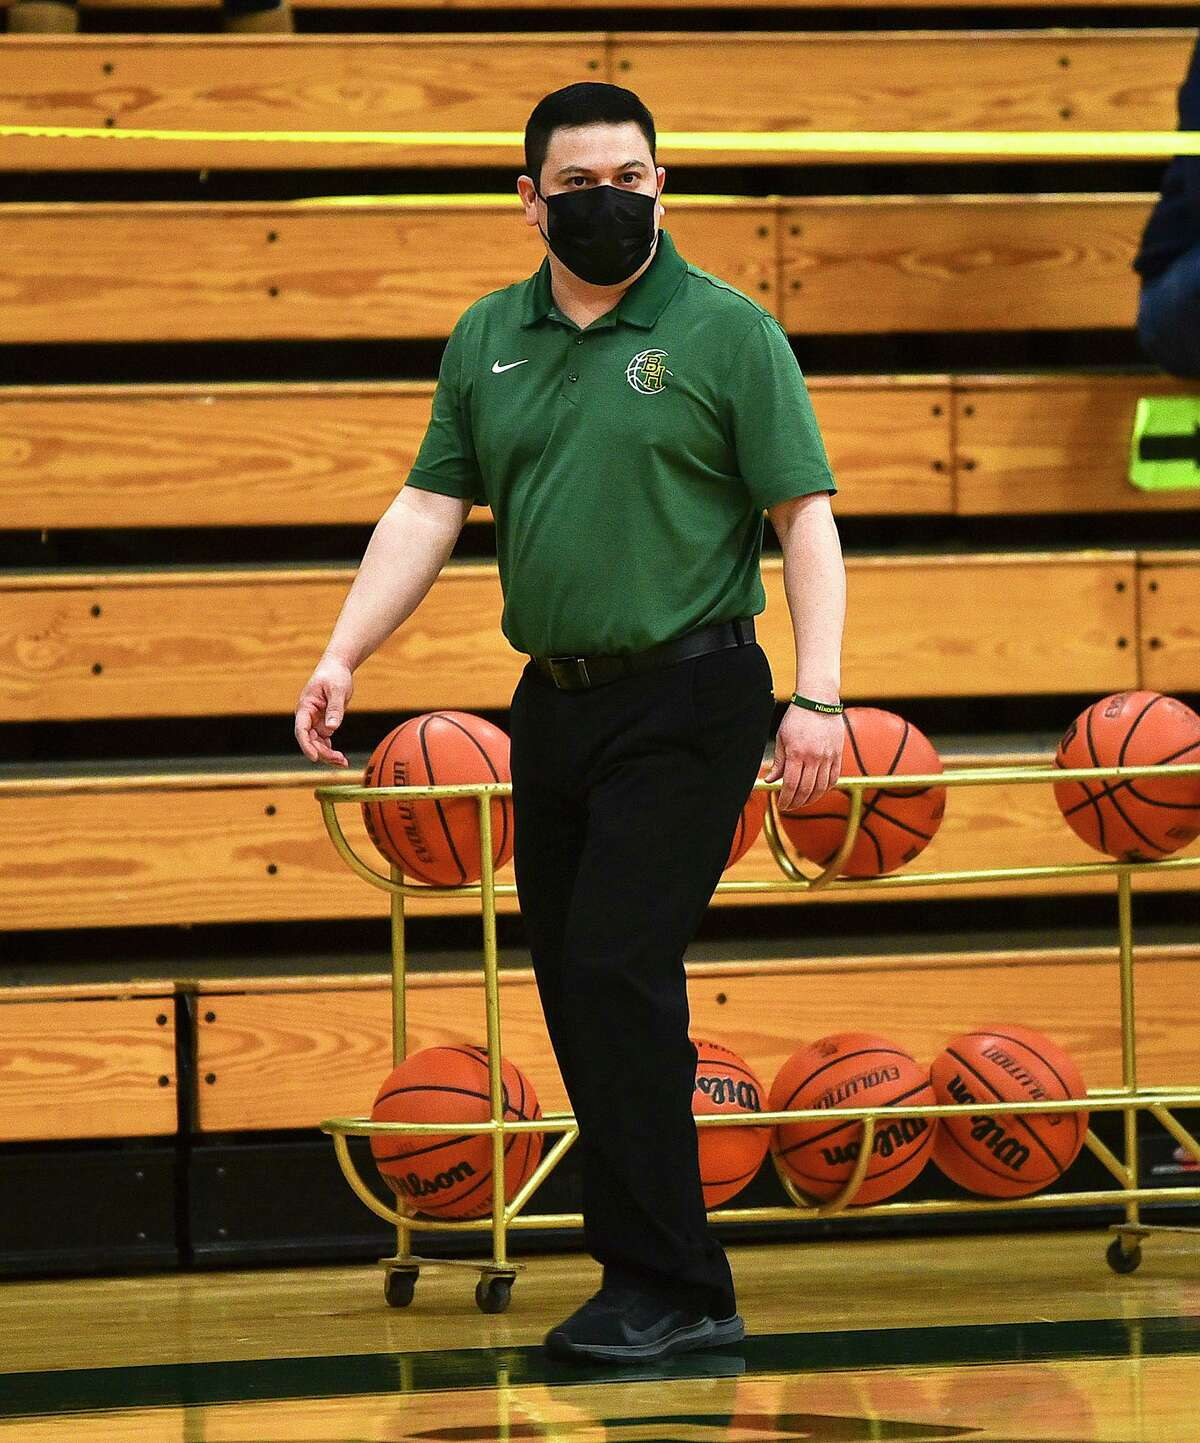 Nixon head coach Pete Solis and other Laredo coaches have gone causal this year with their attire due to the COVID-19 pandemic.